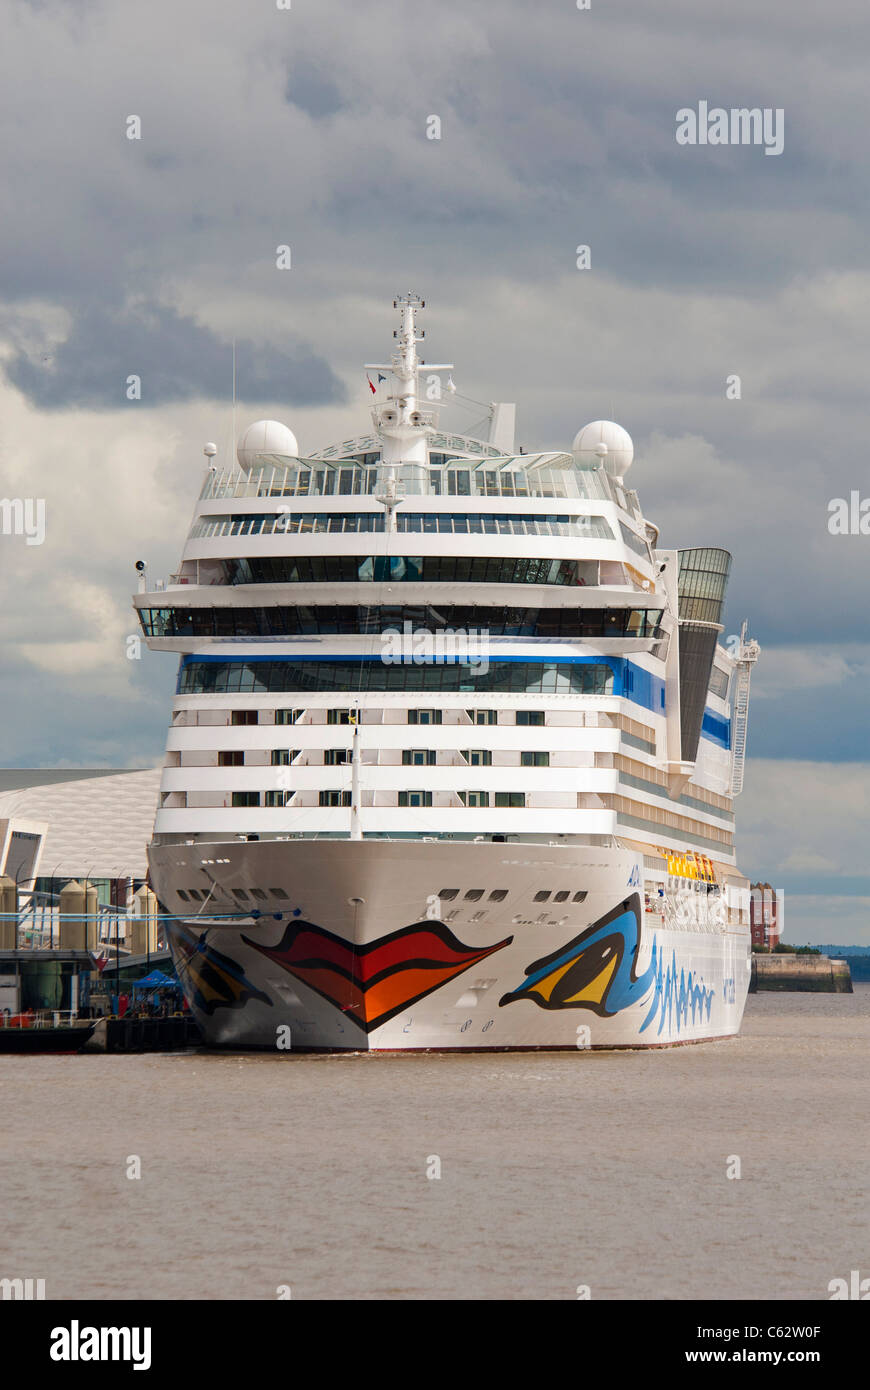 Cruise liner Aidablu berthed at the Liverpool cruise terminal at the Pier Head.  Stock Photo